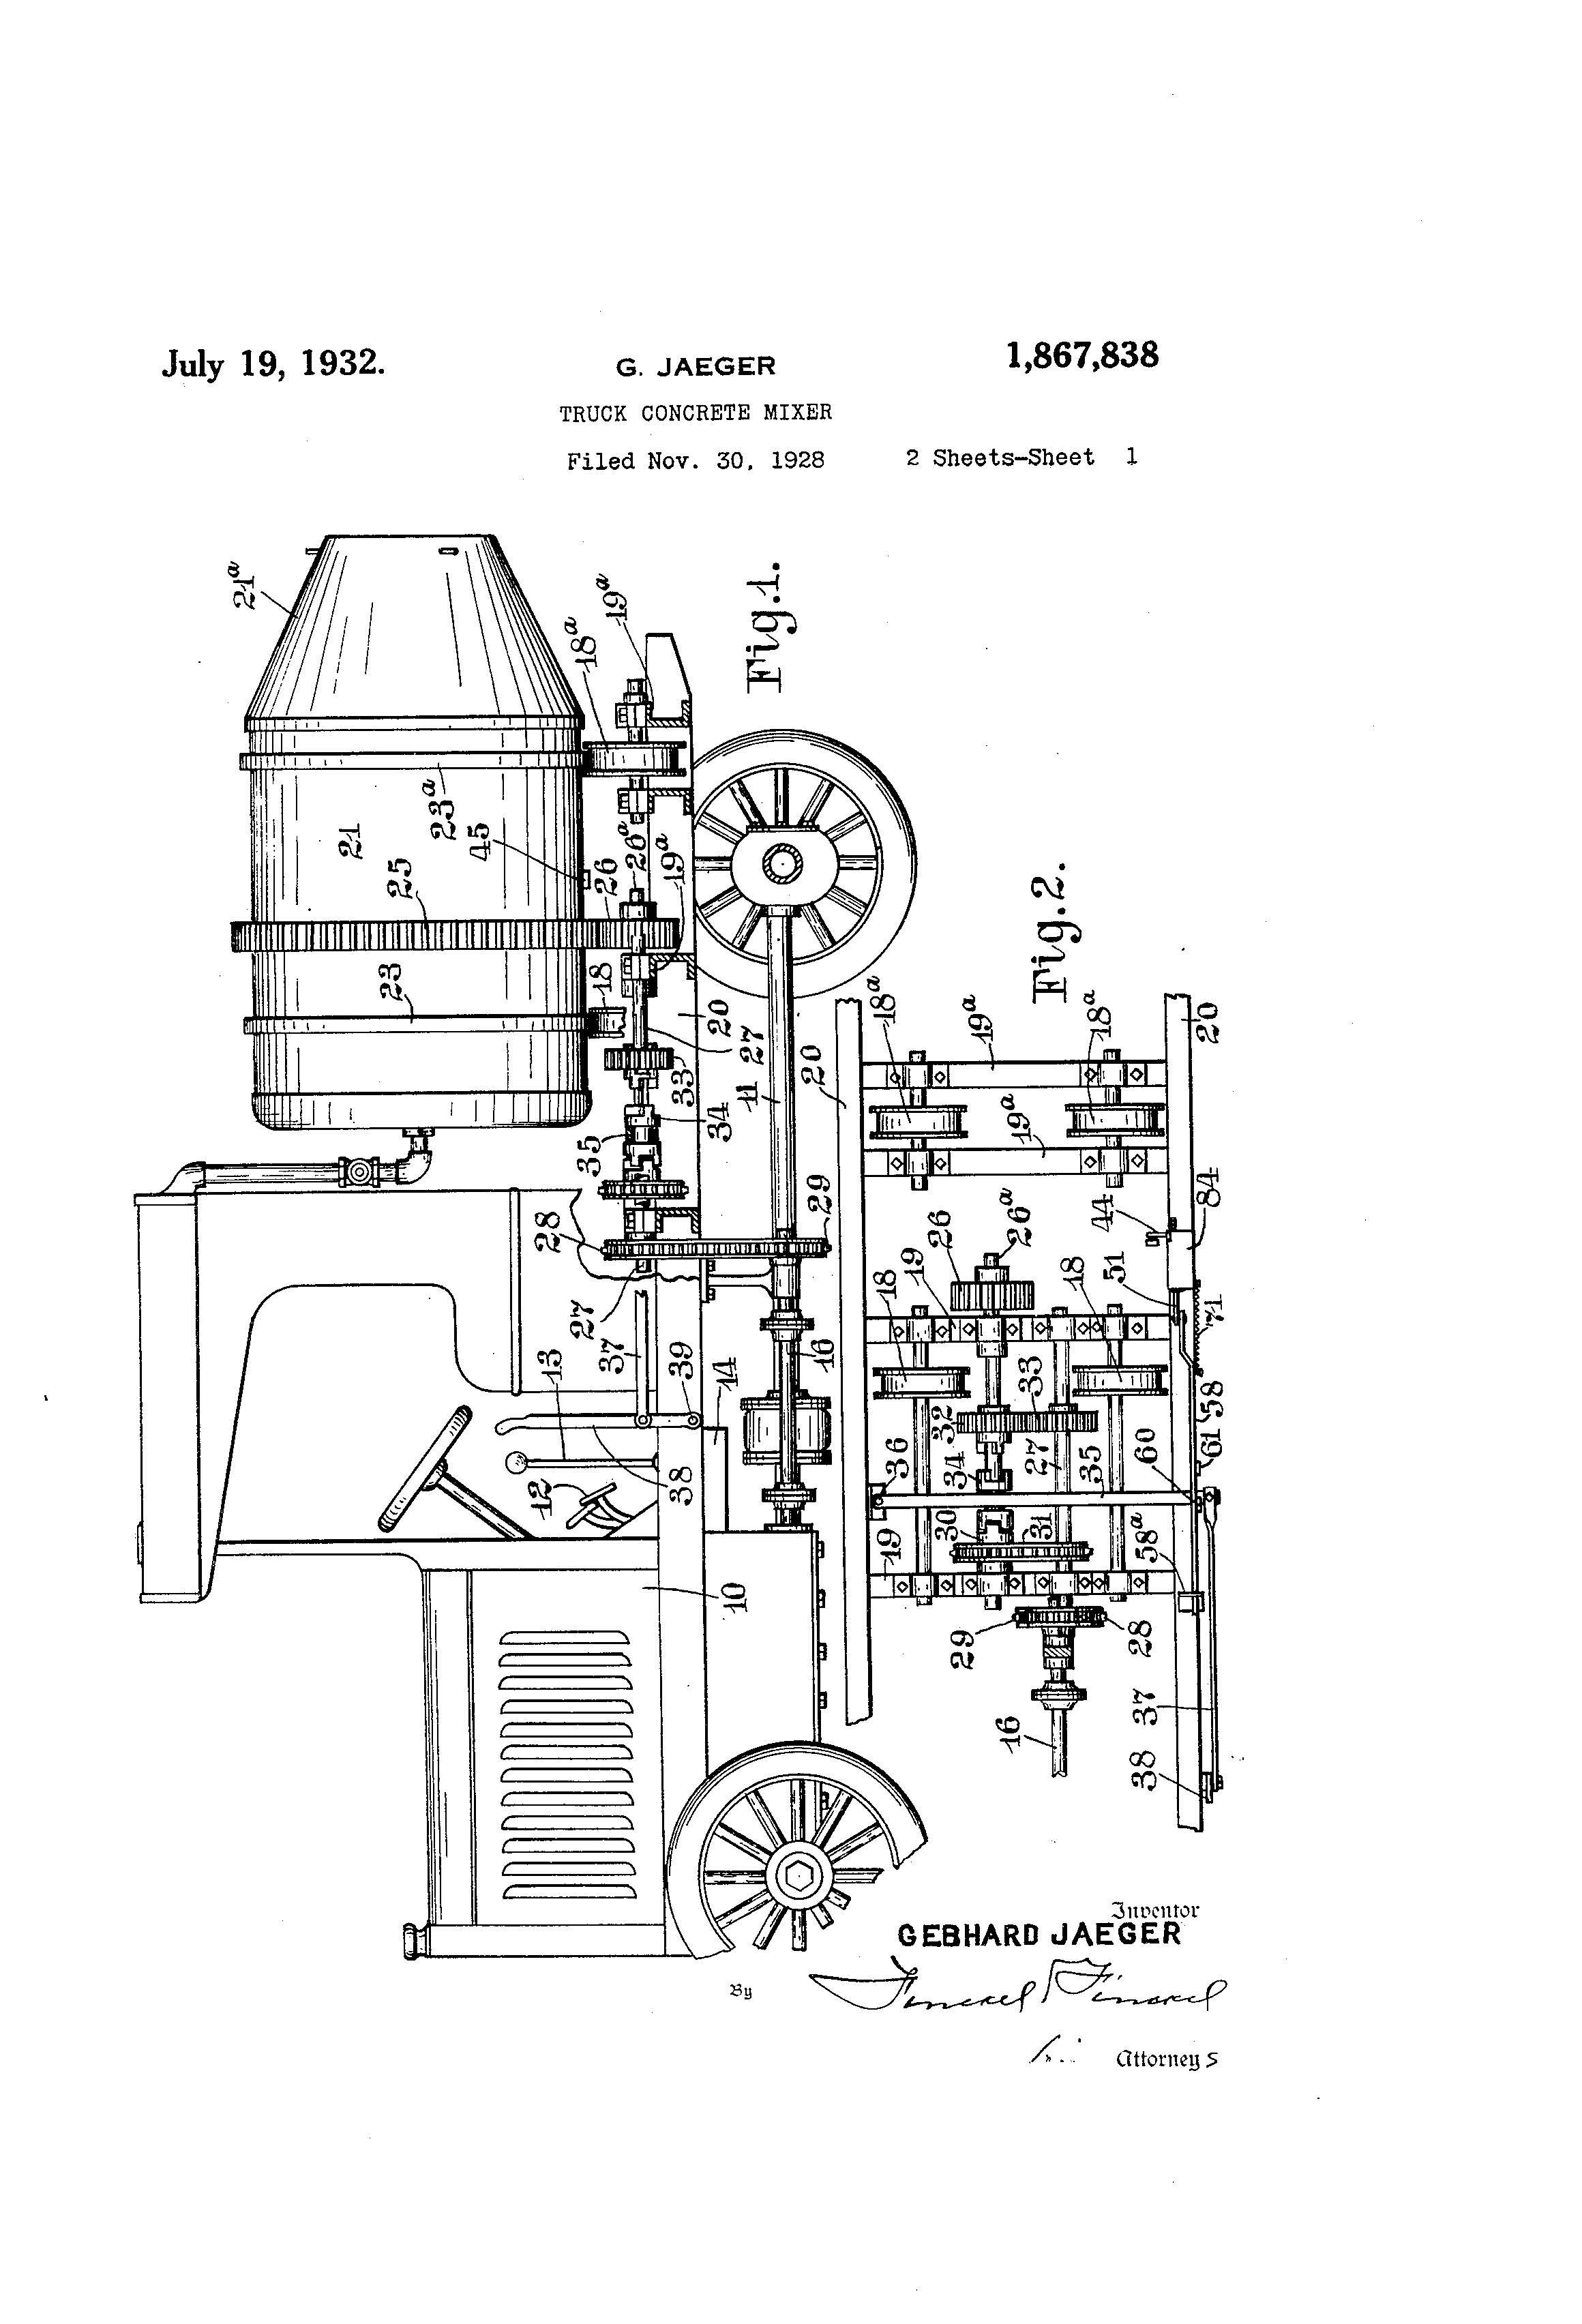 Patent Of The Day Truck Concrete Mixer